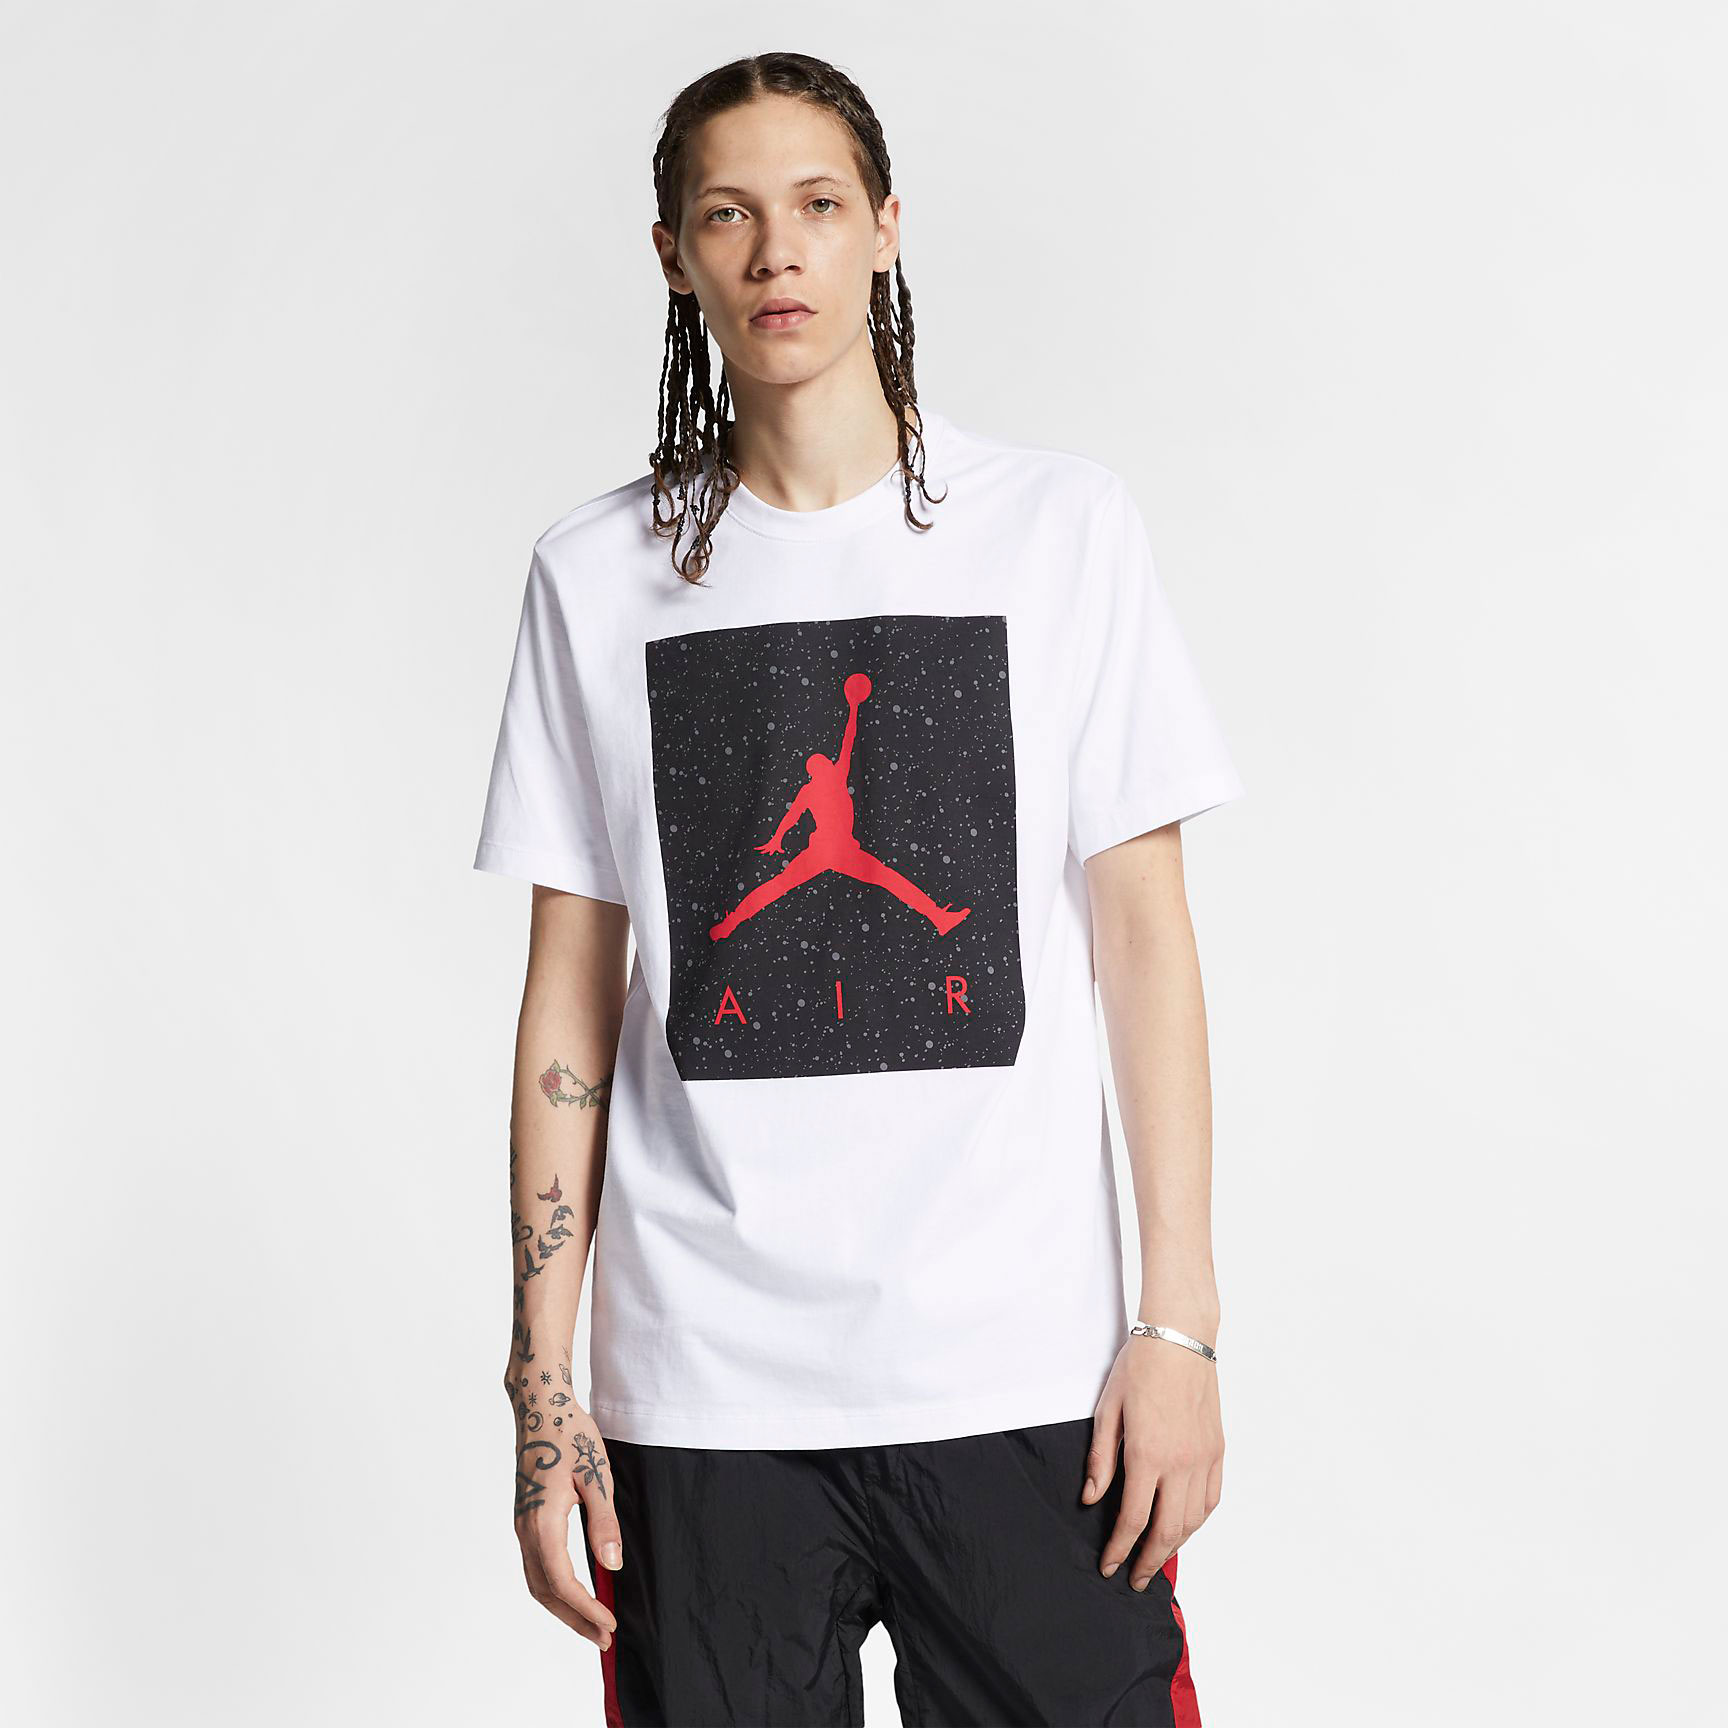 air-jordan-4-og-bred-cement-shirt-match-3